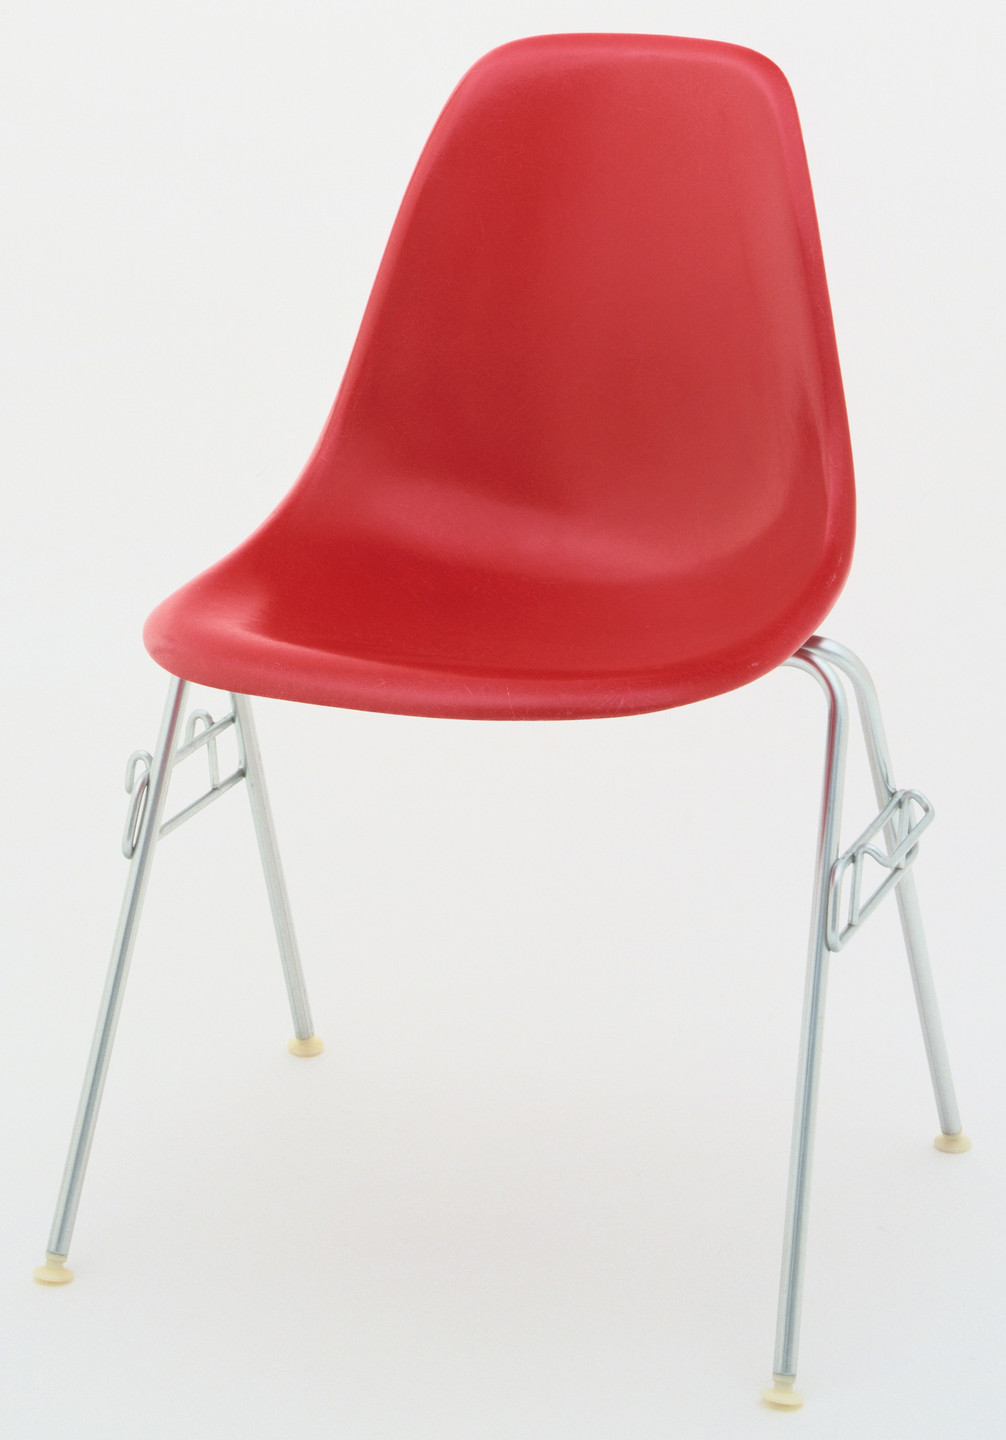 Charles Eames, Ray Eames. Stacking Side Chair. 1955